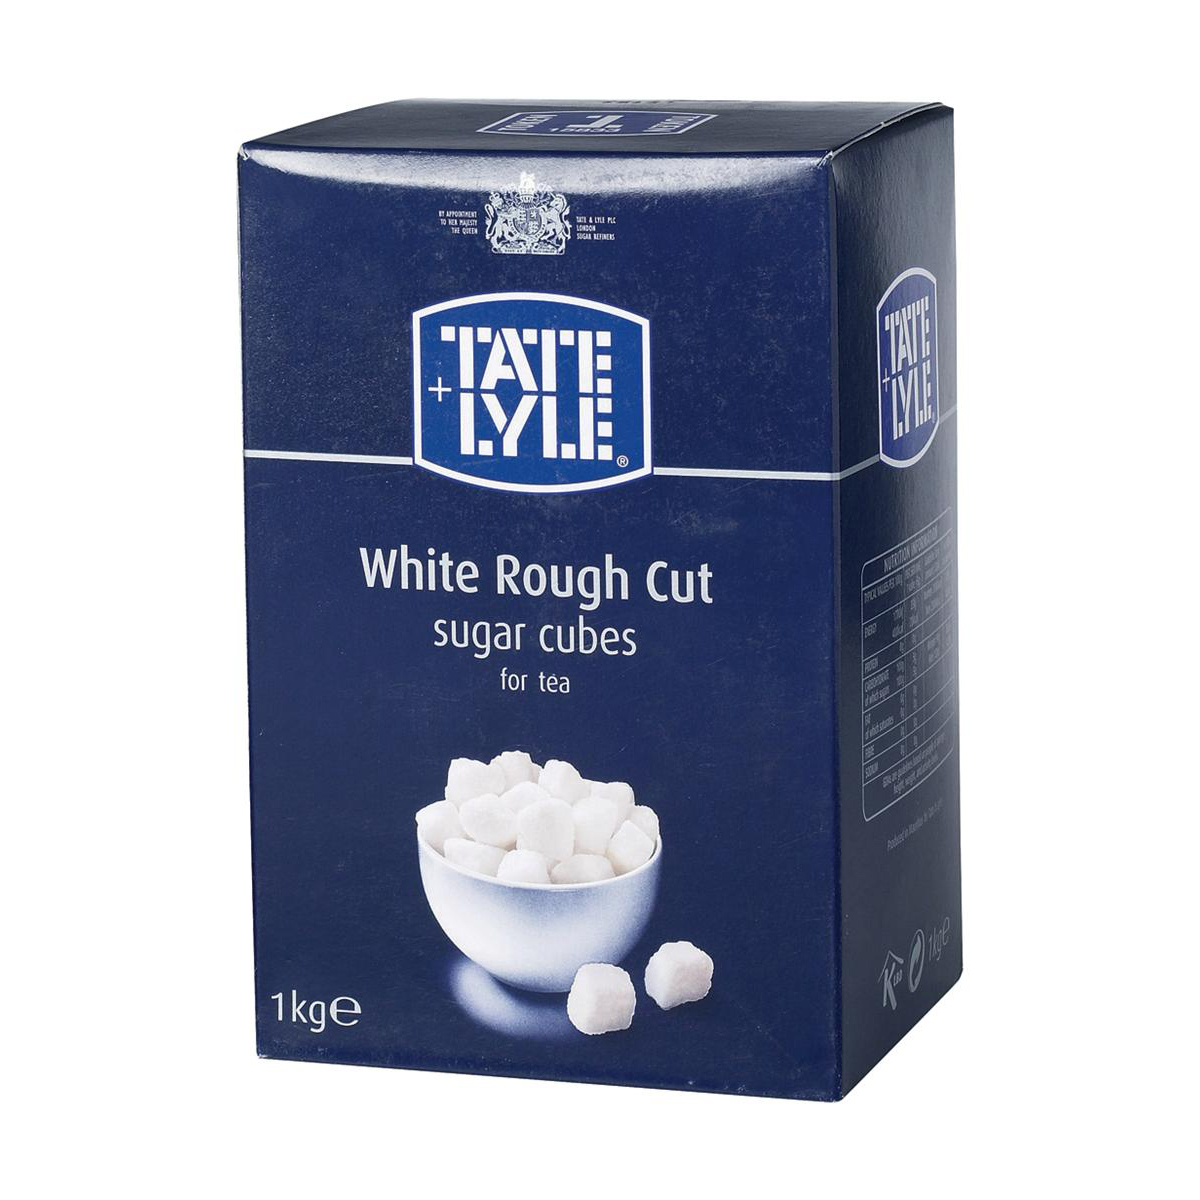 Tate and Lyle White Sugar Cubes Rough-cut 1 Kg Ref 412090